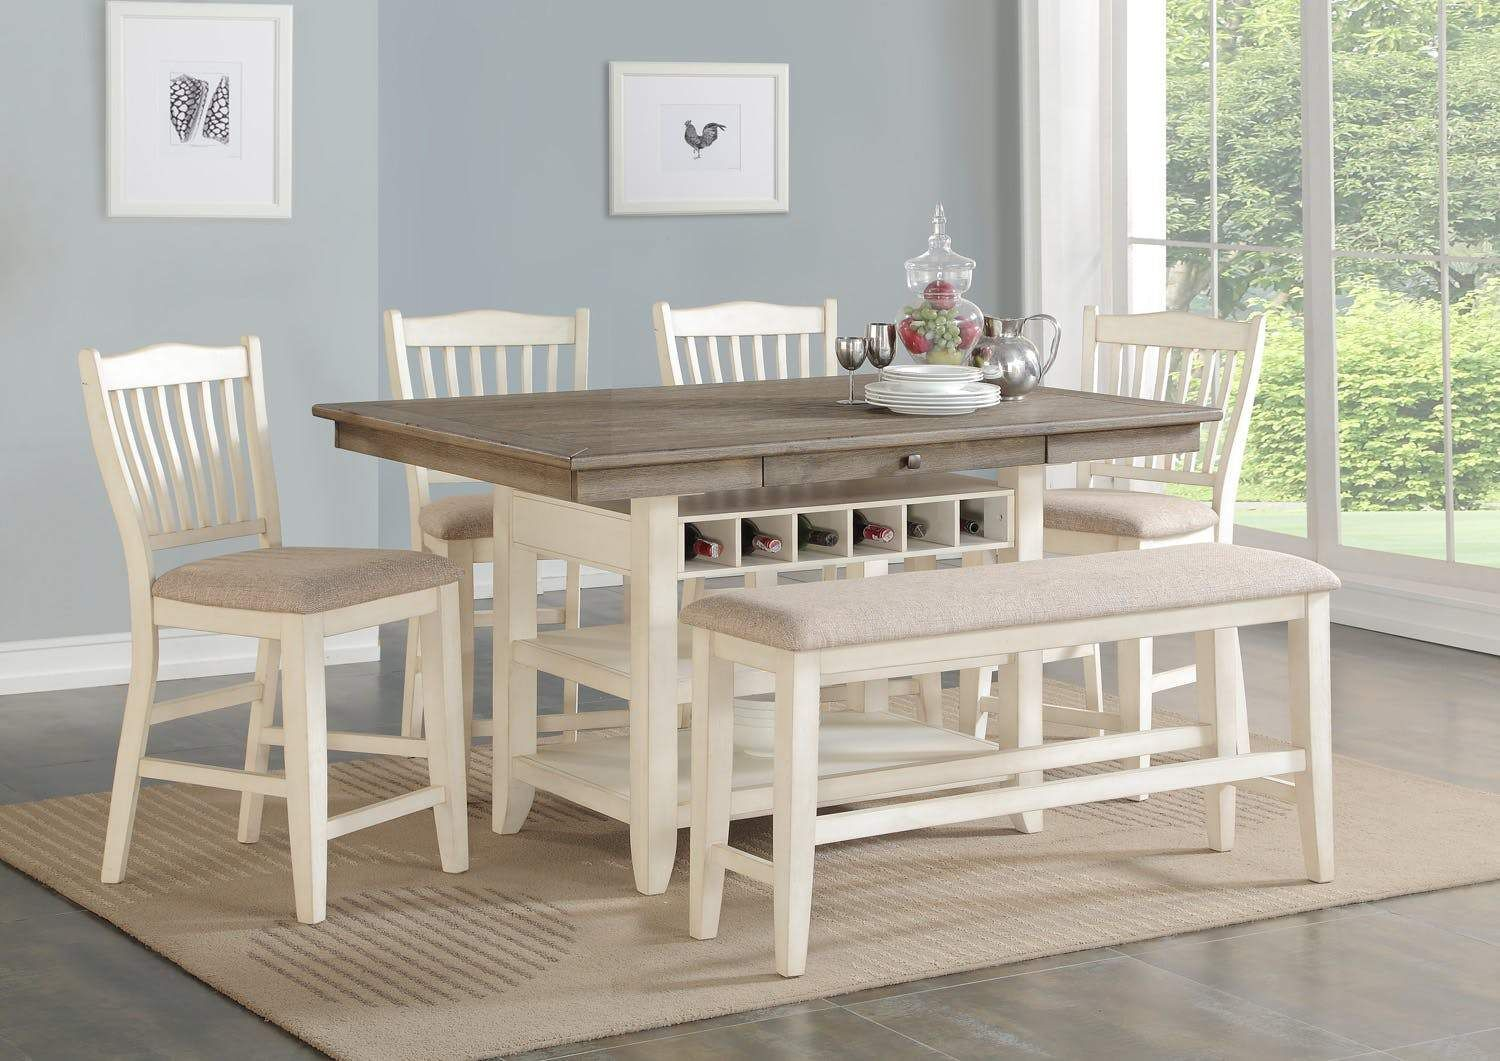 Dublin Counter Dining Set Counter Height Table Counter Height Dining Sets Counter Height Dining Table